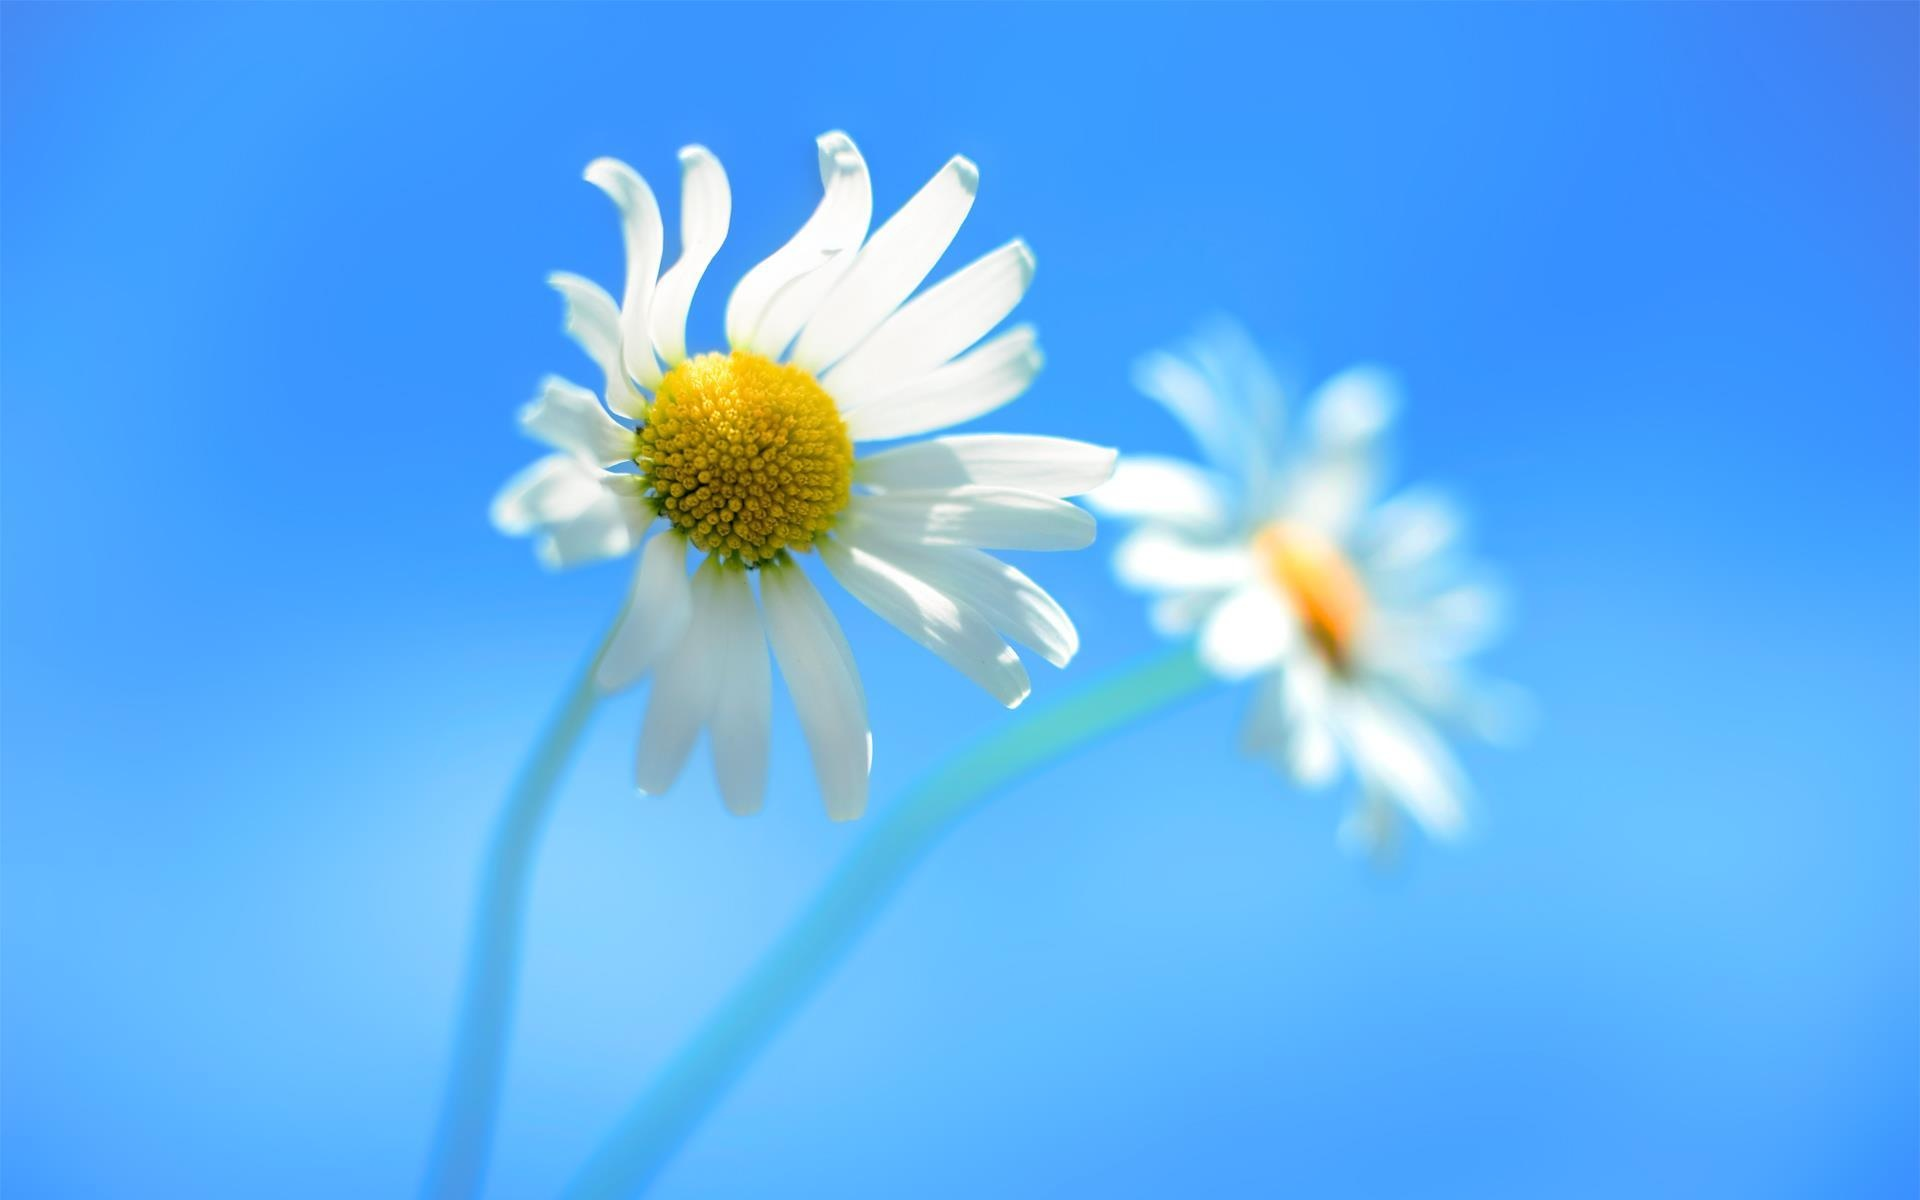 Daisy blue background Wallpaper in 1920x1200 Widescreen